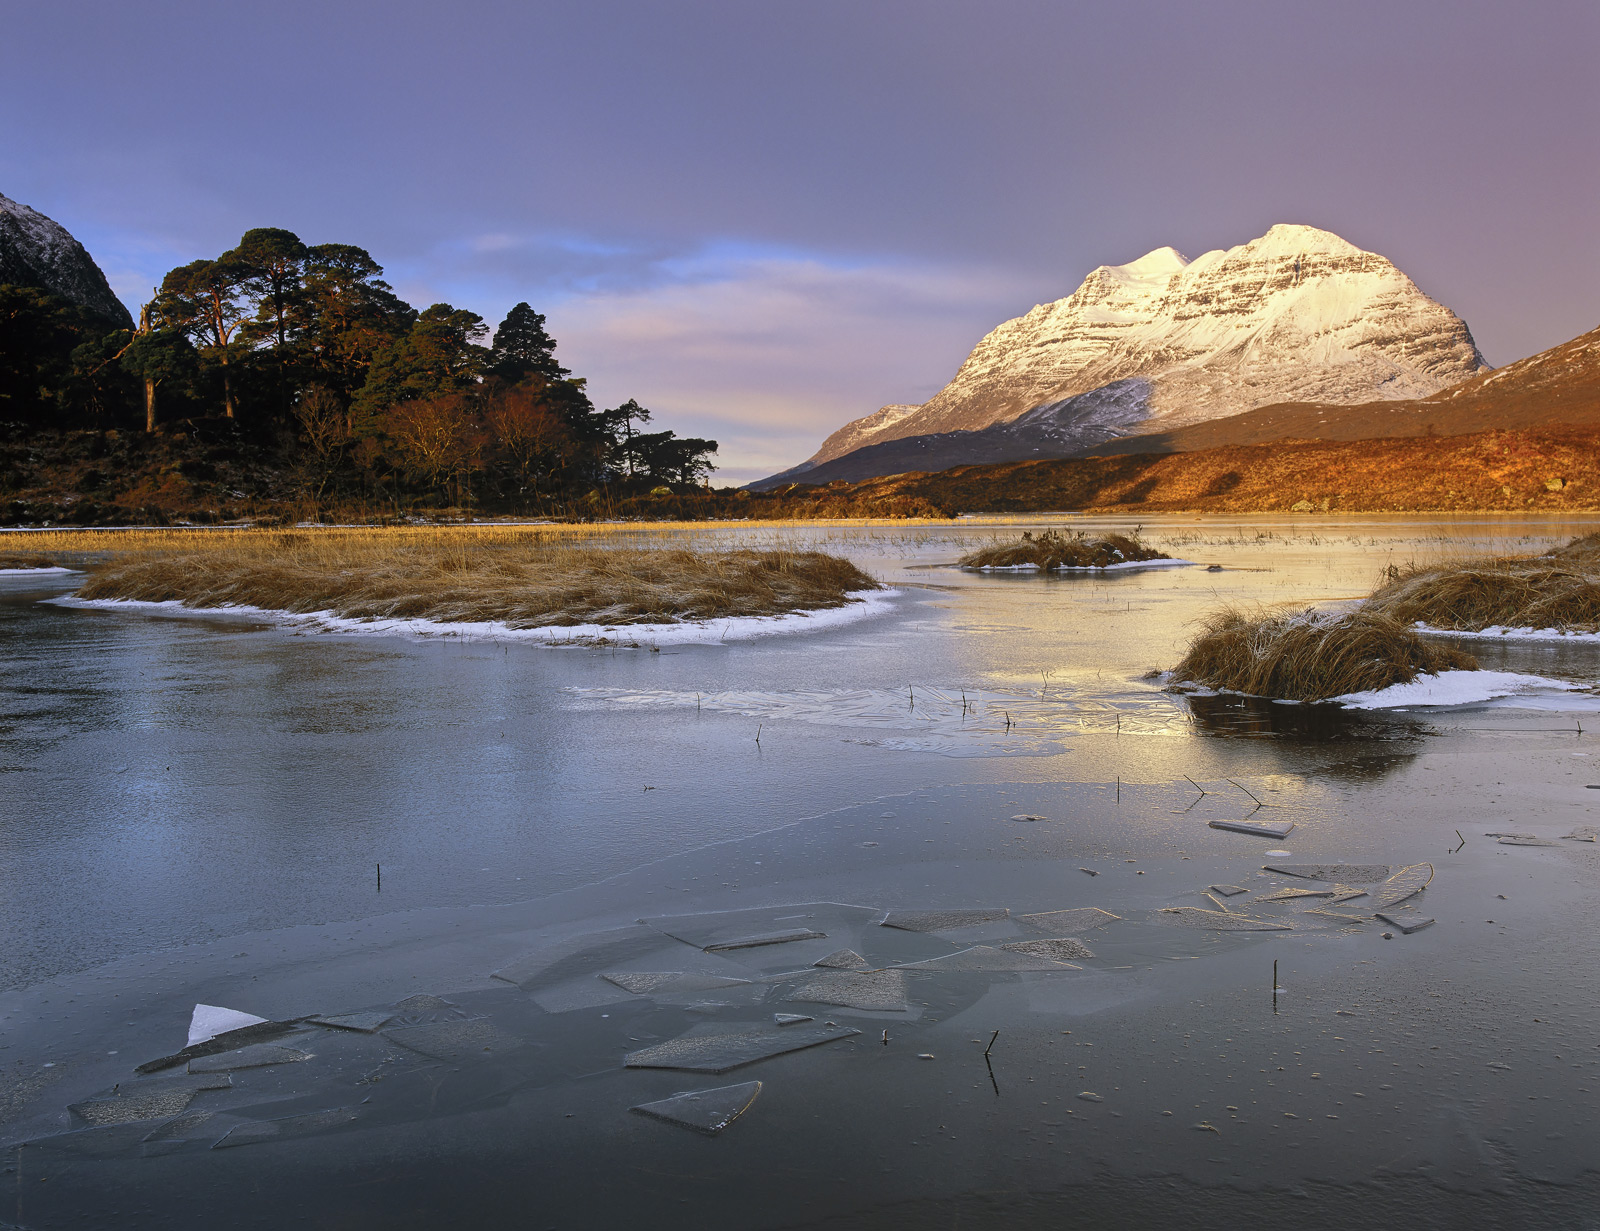 One of the most beautiful and heartwarming winter sunrises I can remember at the edge of Loch Clair with fractured patterns of...